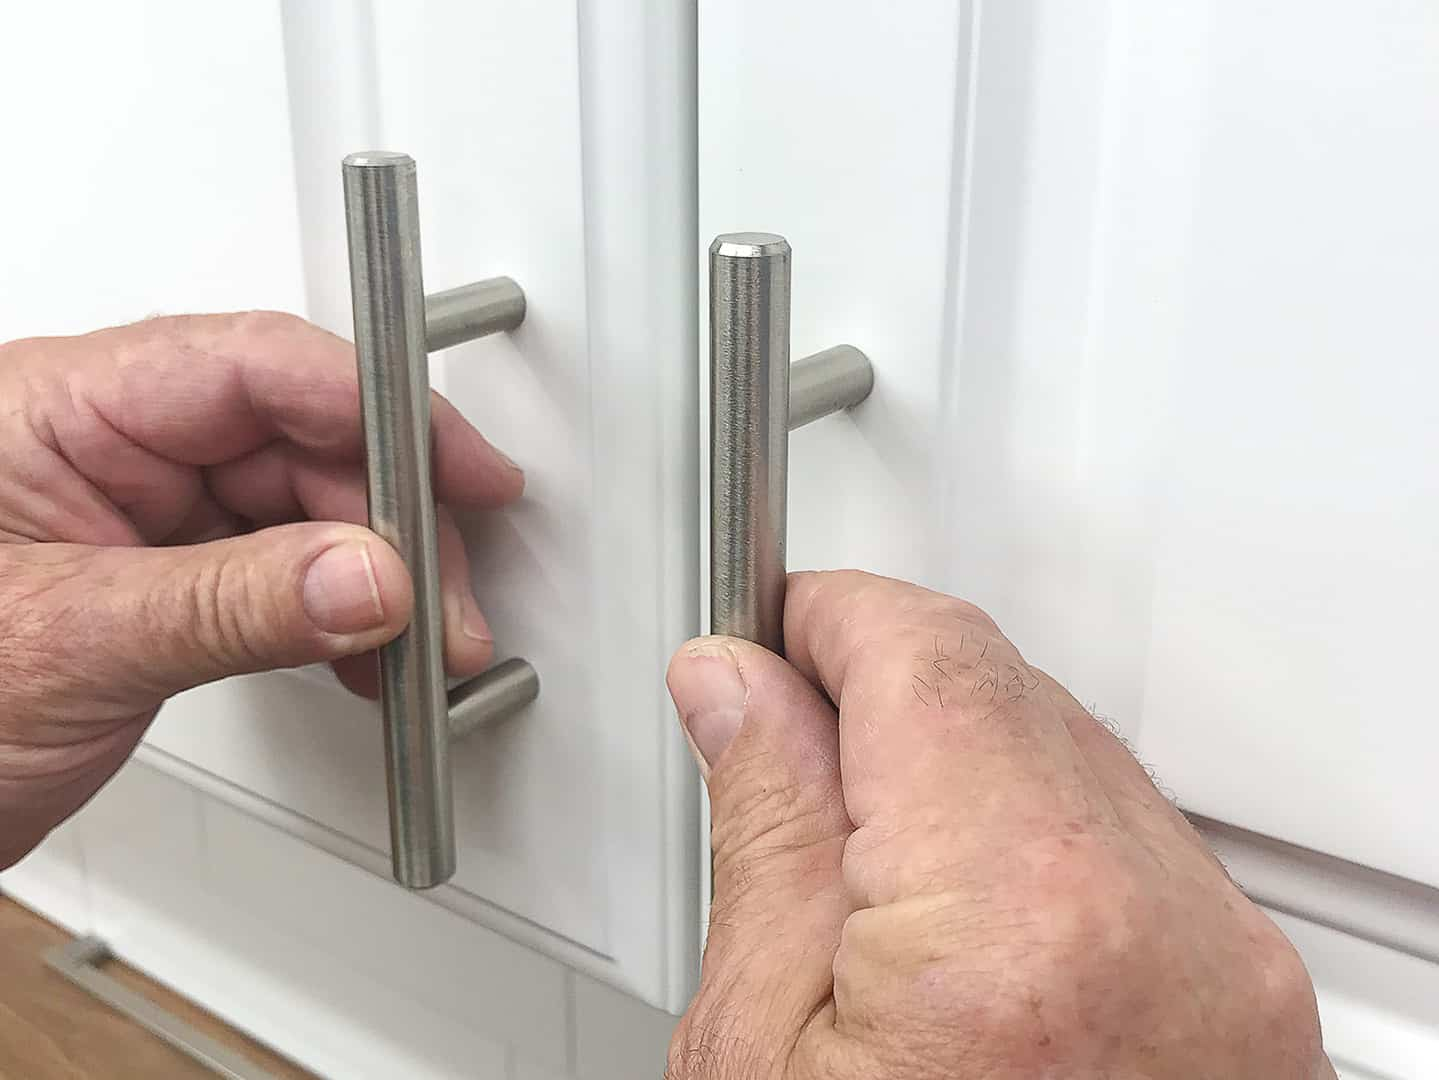 handle installation on cabinet door with TP-1934 Cabinet Hardware Jig (step 1)